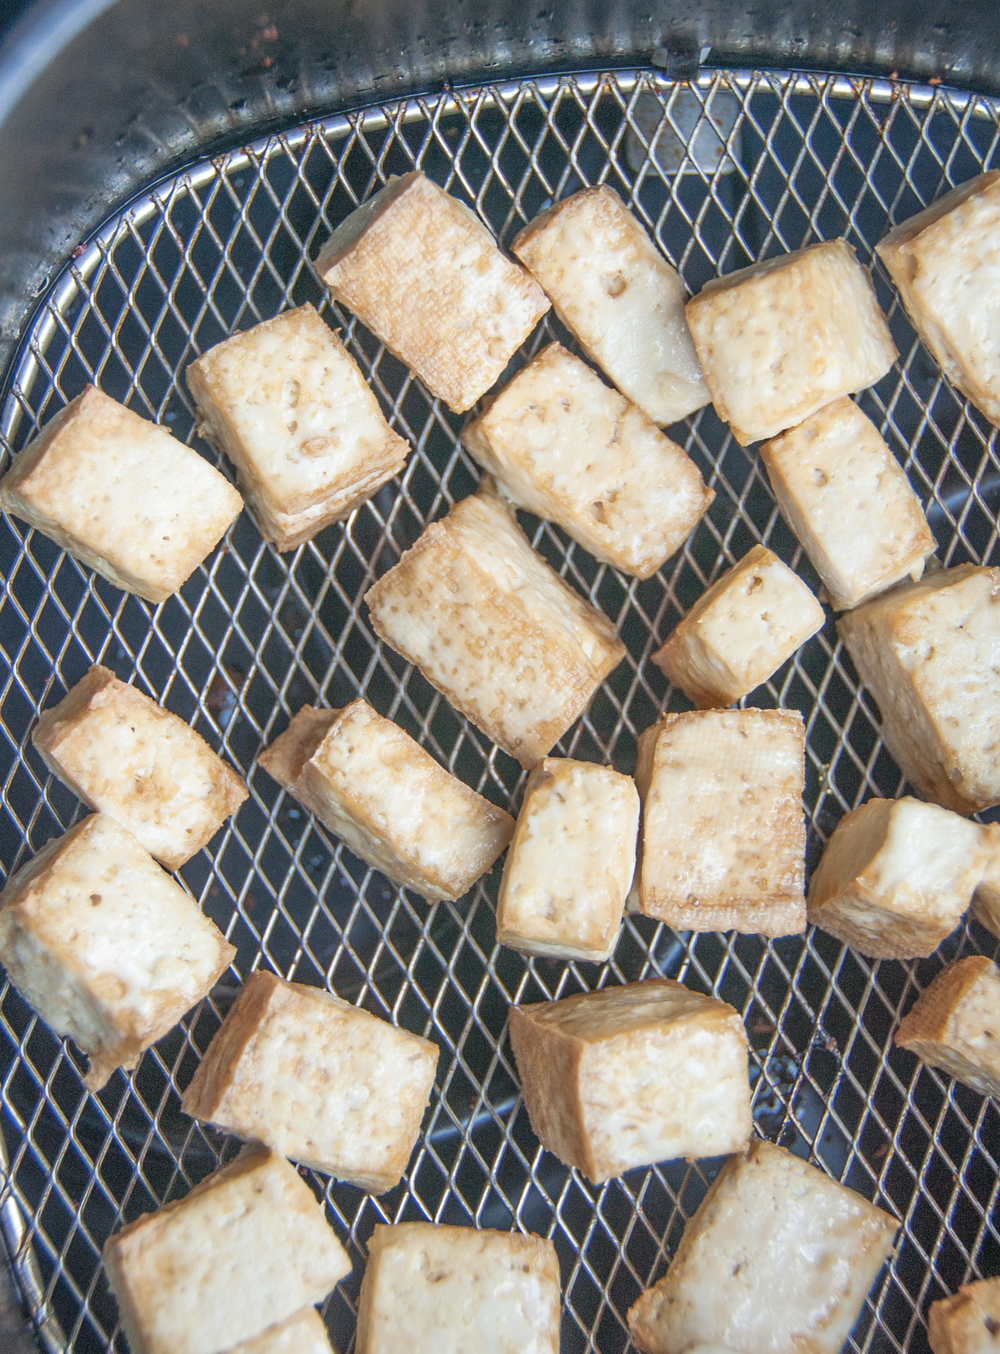 Tofu fried in Philips airfryer